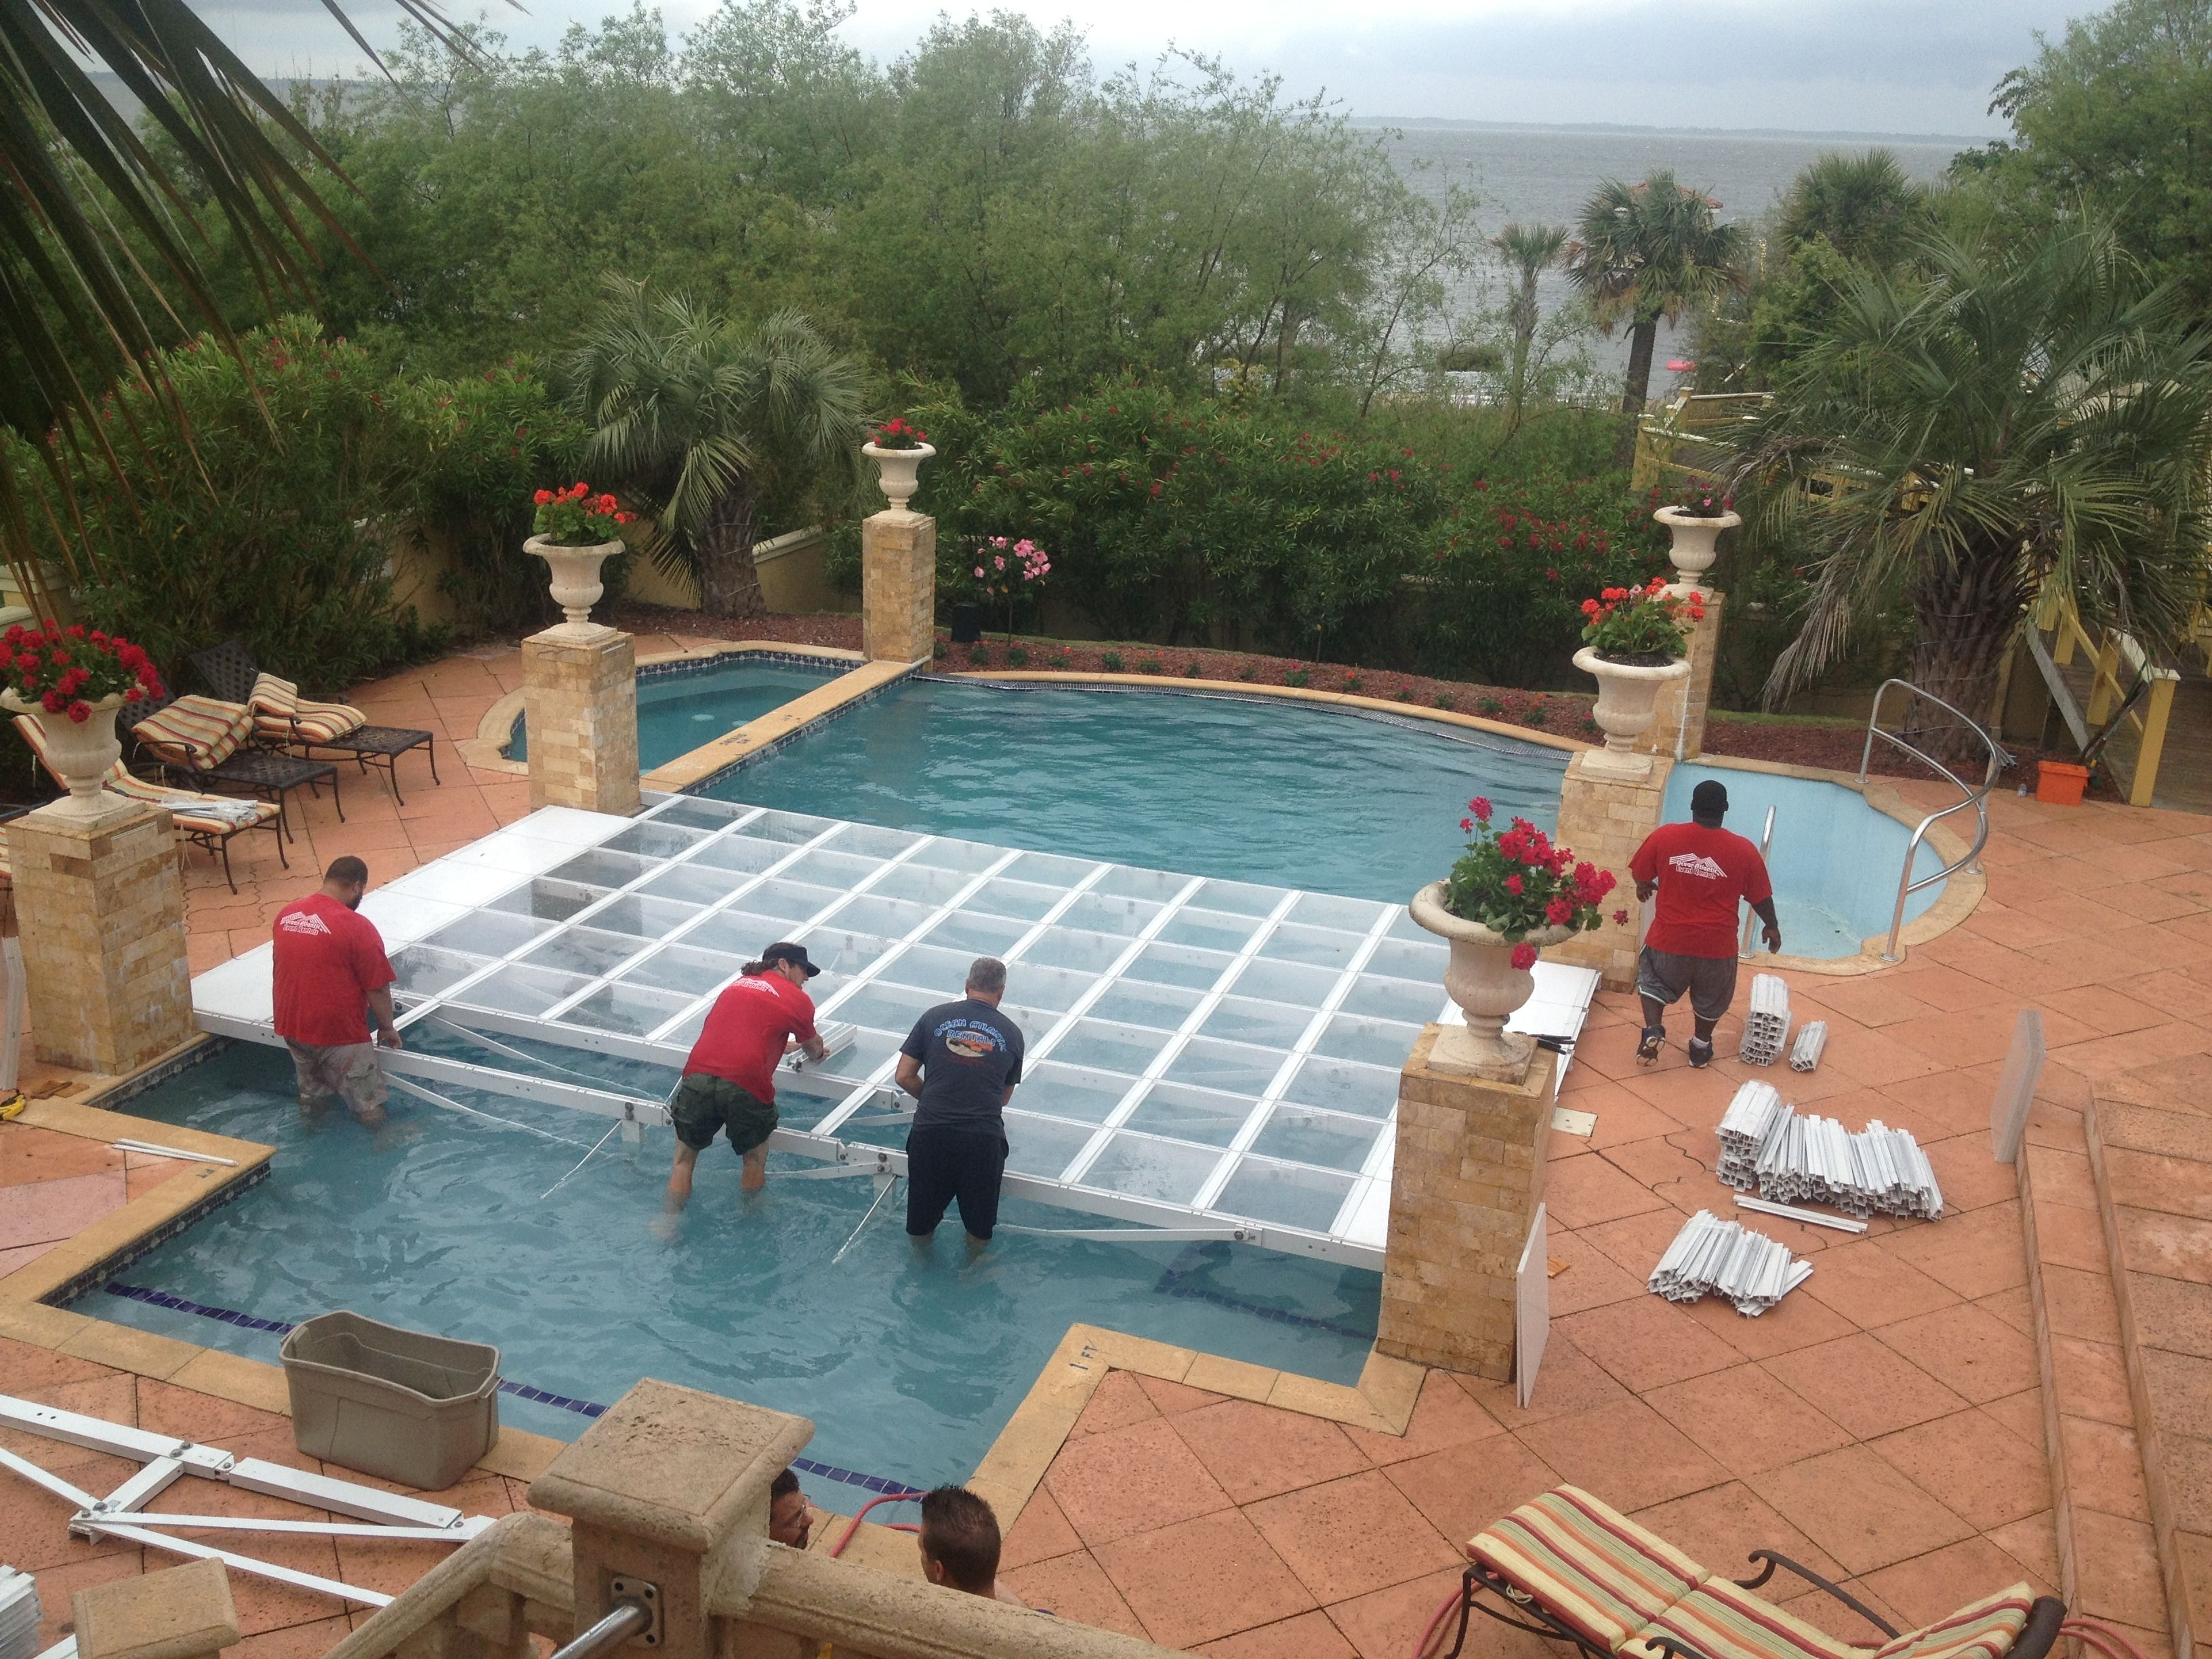 Pool Cover In Progress At The Grand Ritz Palm Our Event Crew Really Knows How To Go Above And Beyond To Make Your Swimming Pool House Pool Cover Pool Wedding